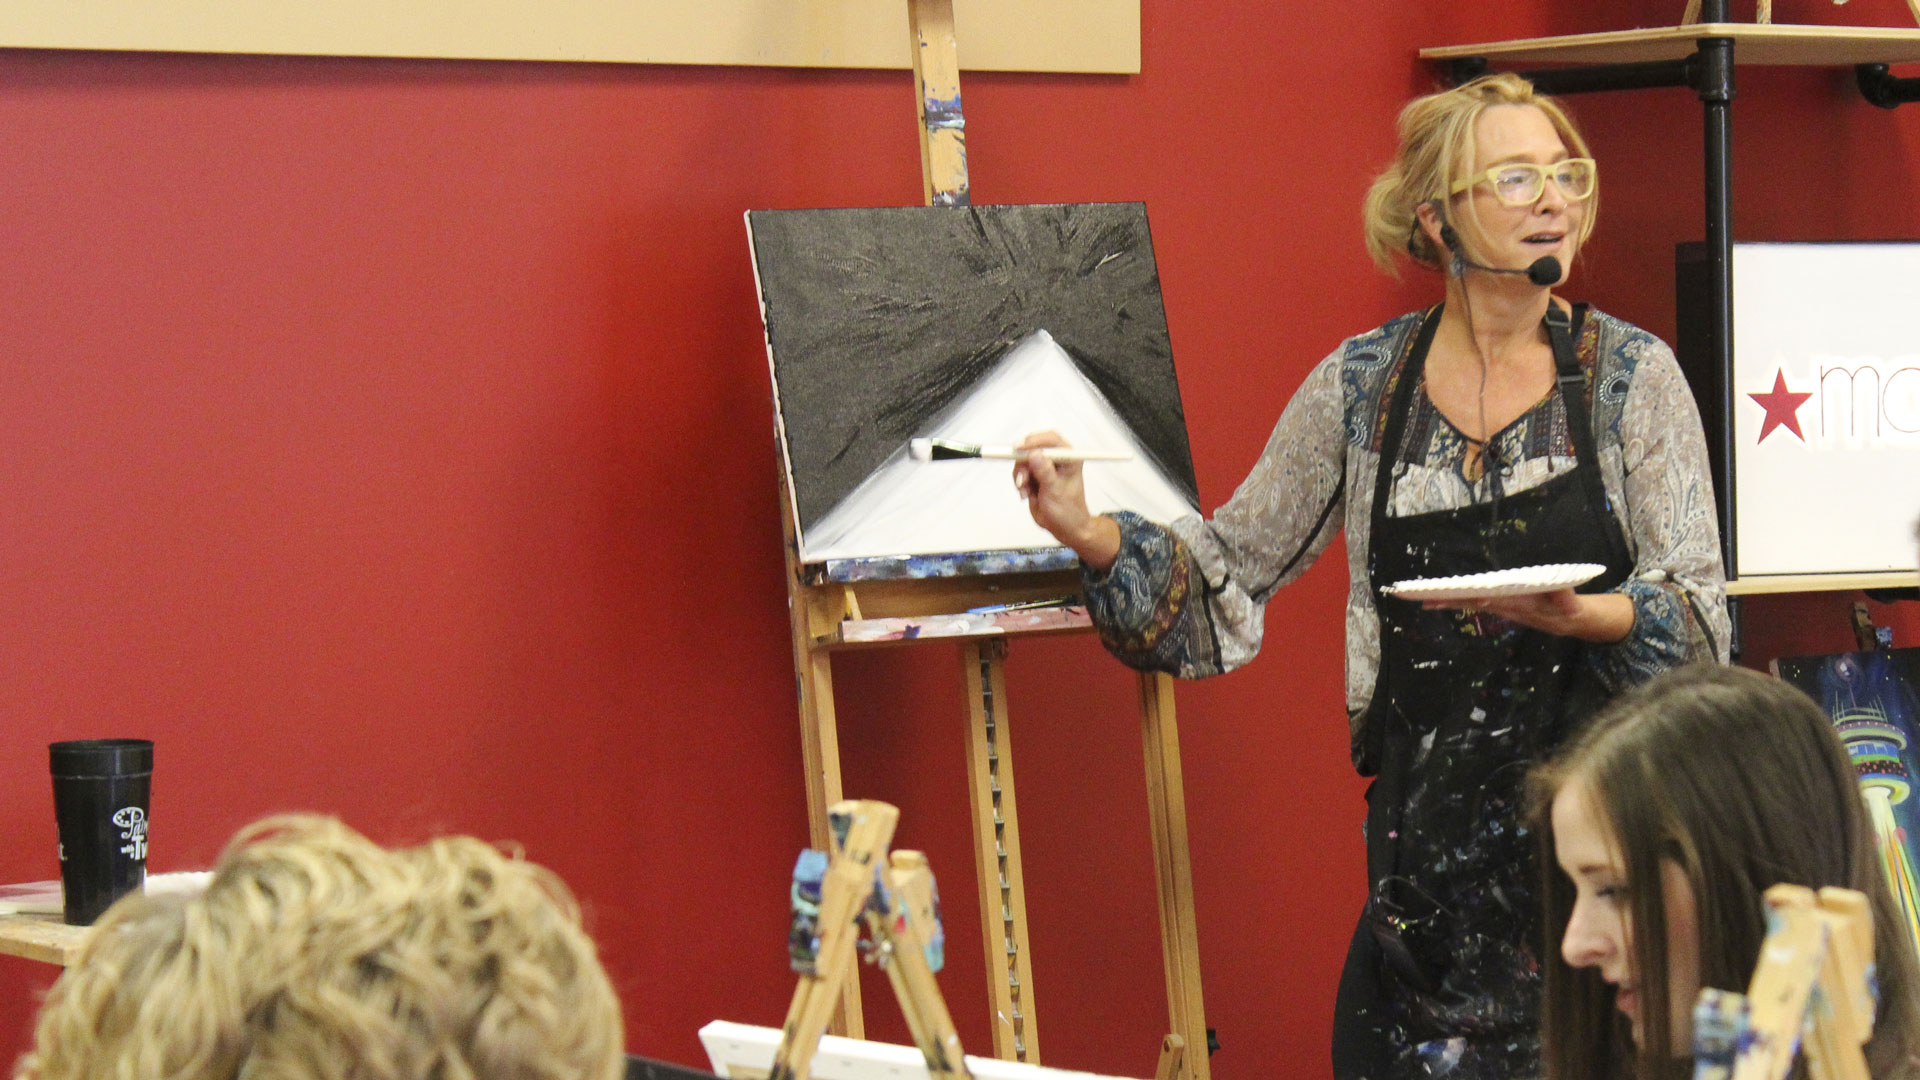 Renee Maloney: Painting With A Twist